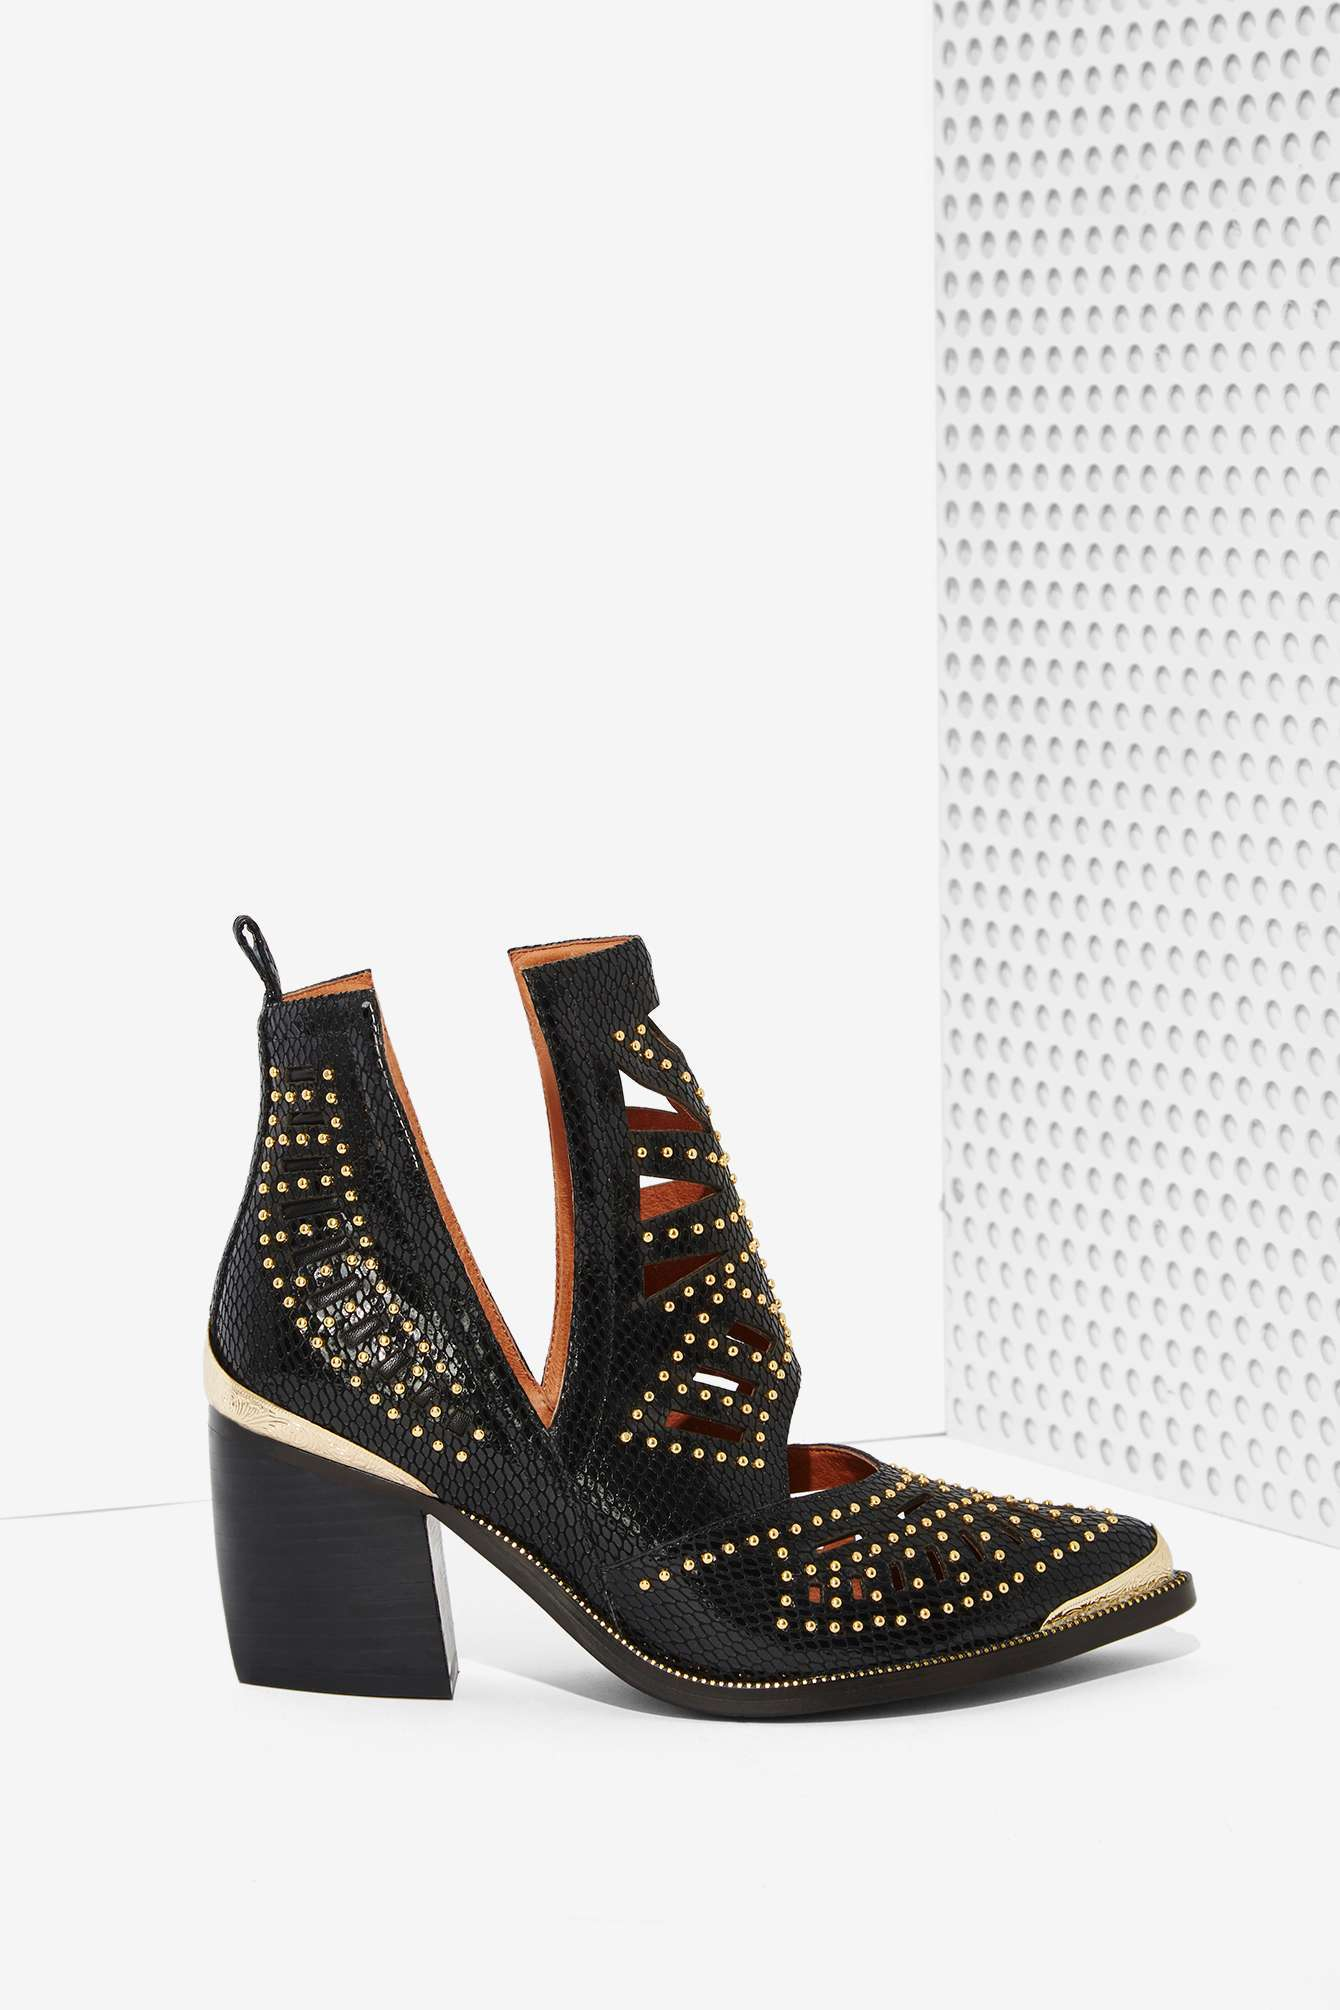 Nasty Gal Maceo Cutout Leather Boot In Black Lyst